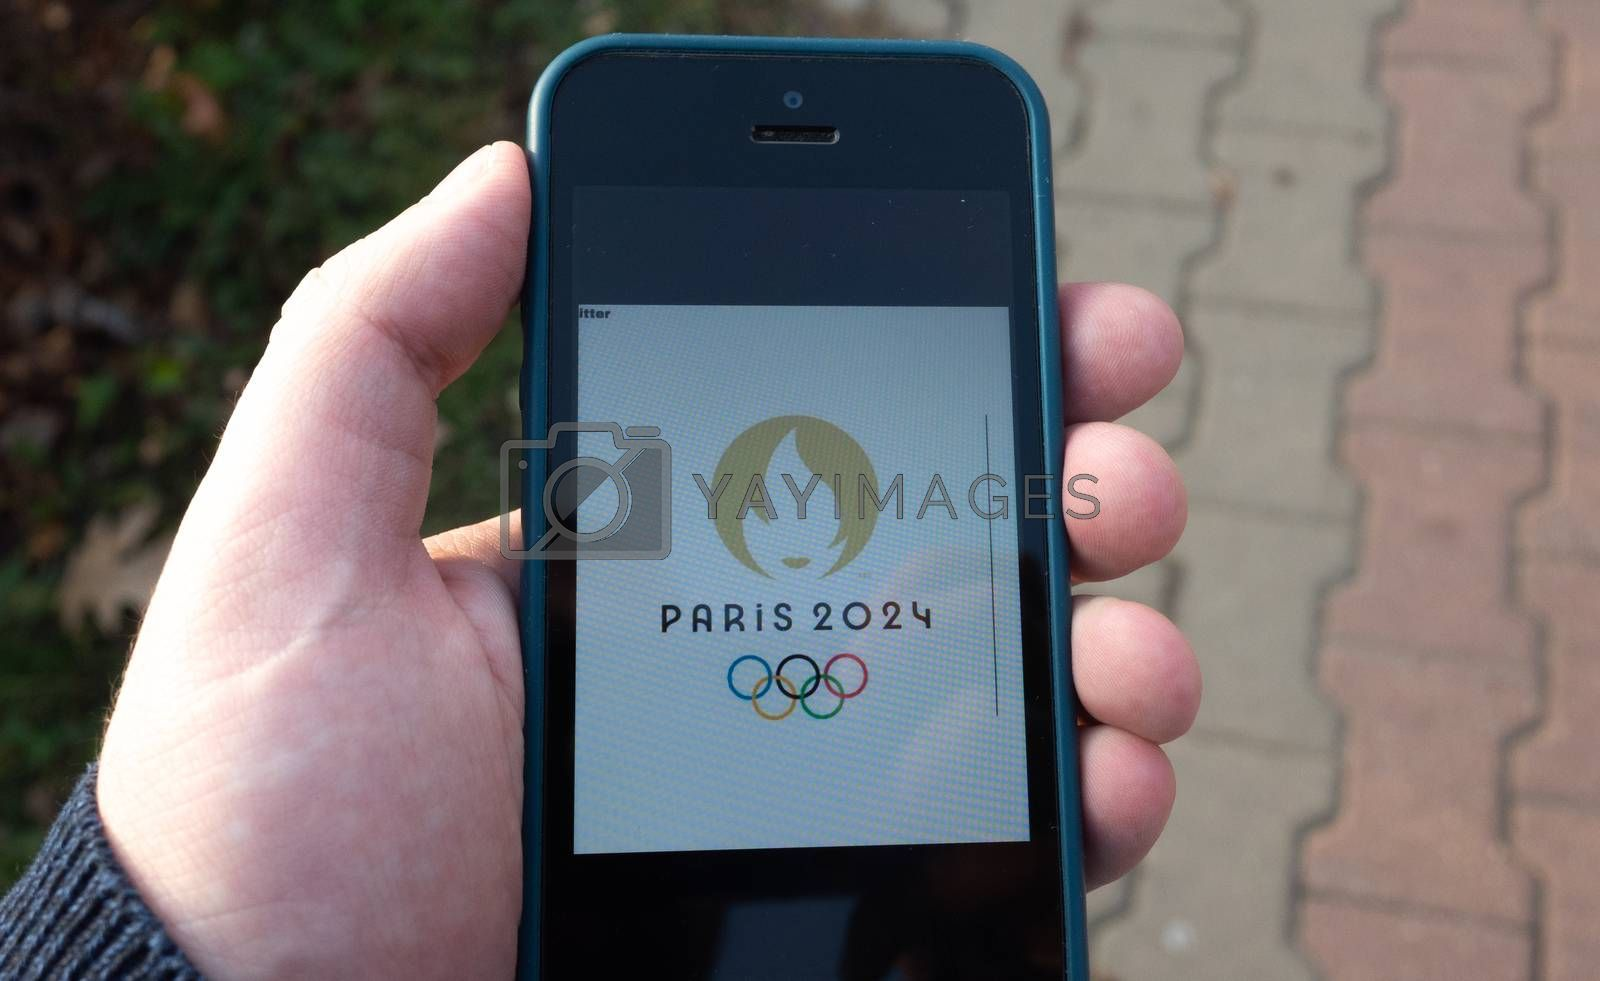 October 22, 2019.  Paris, France. Logo of the XXXIII  Summer Olympics games 2024 on a mobile phone screen.